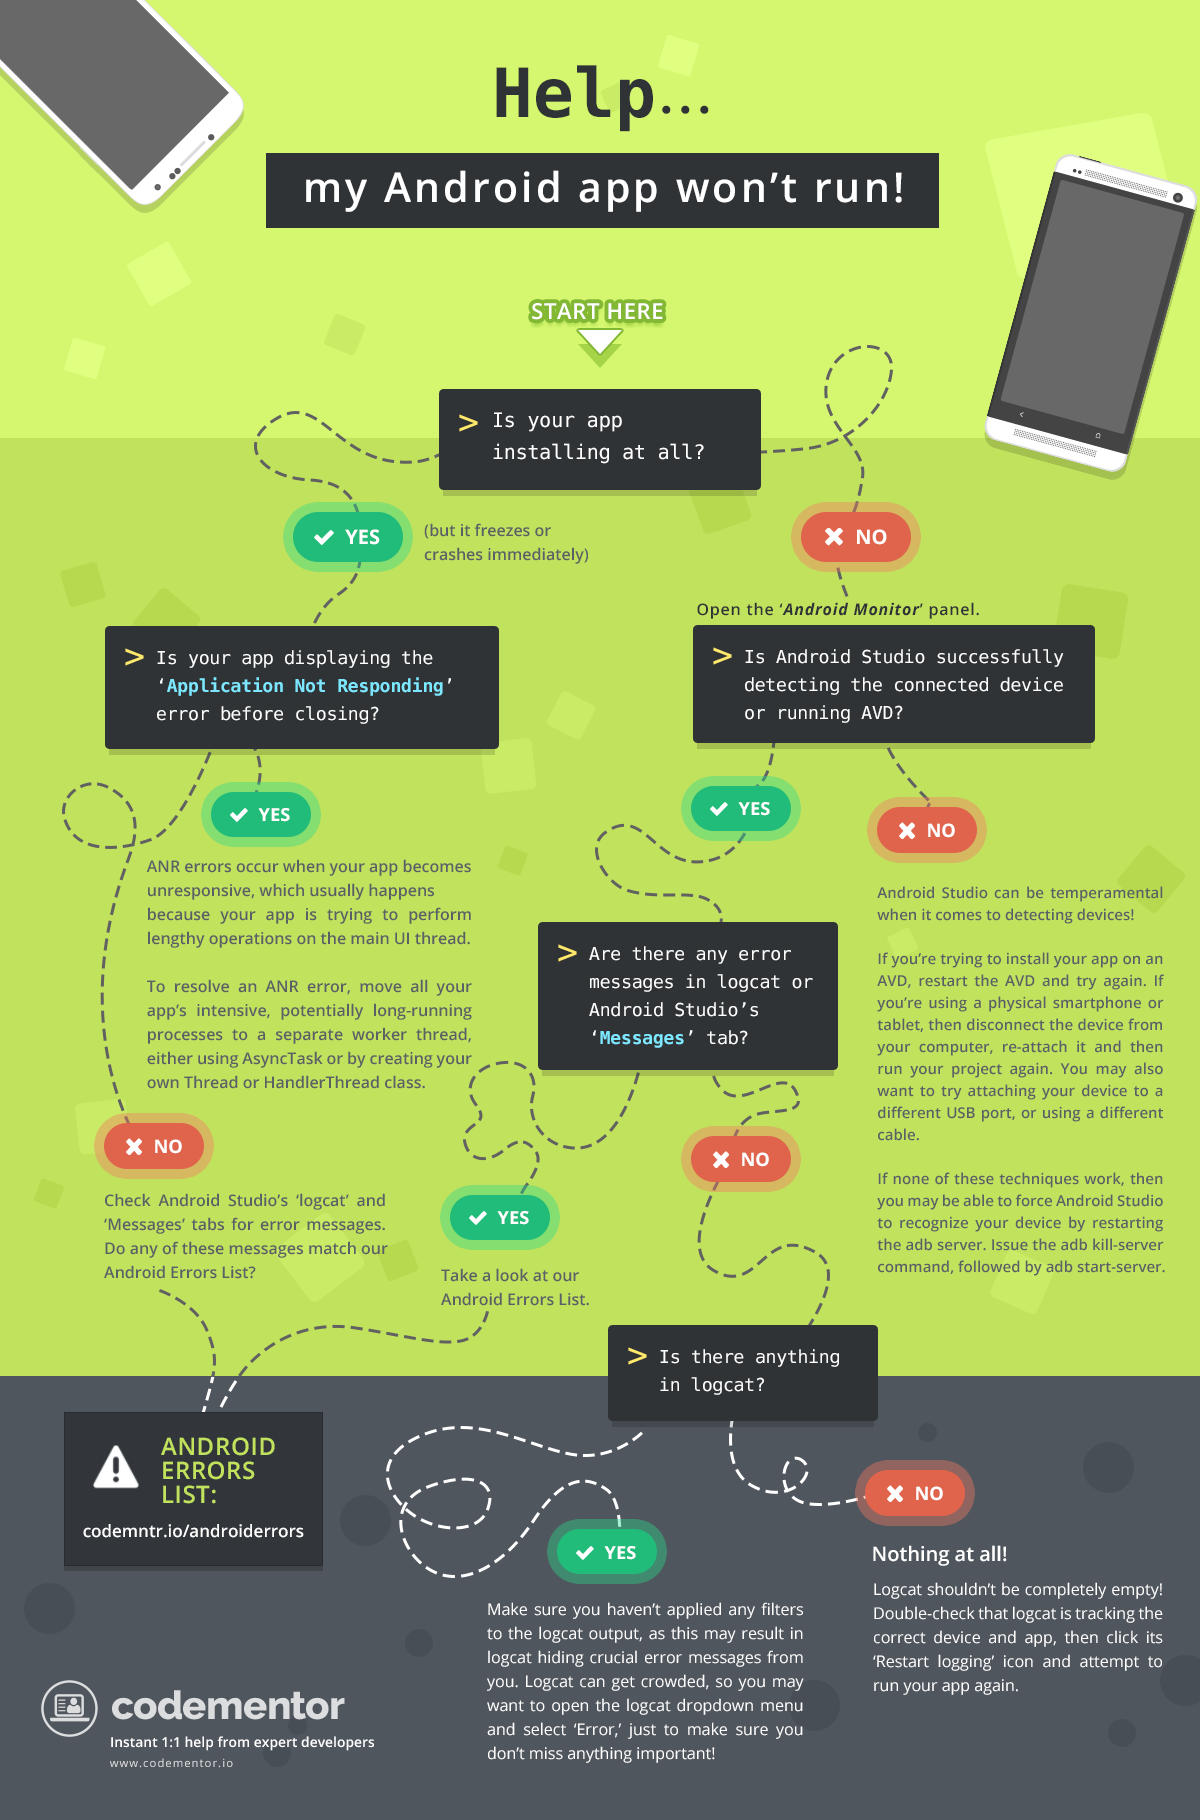 Infographic: 11 Most Common Android Errors and How to Fix